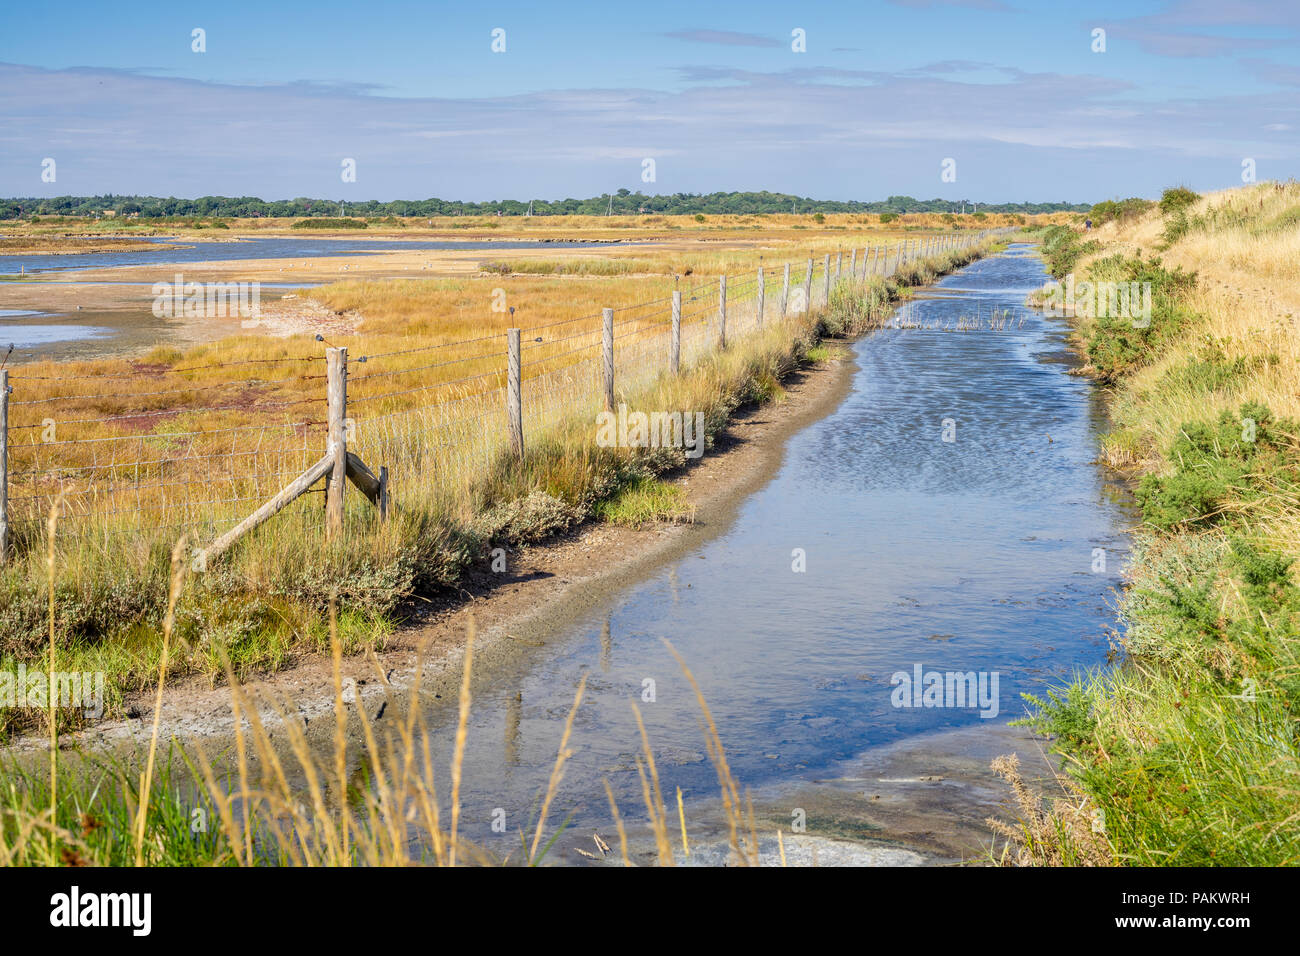 View over Lymington and Keyhaven Marshes Nature Reserve during very dry weather conditions in July 2018, Lymington, Hampshire, England, UK - Stock Image